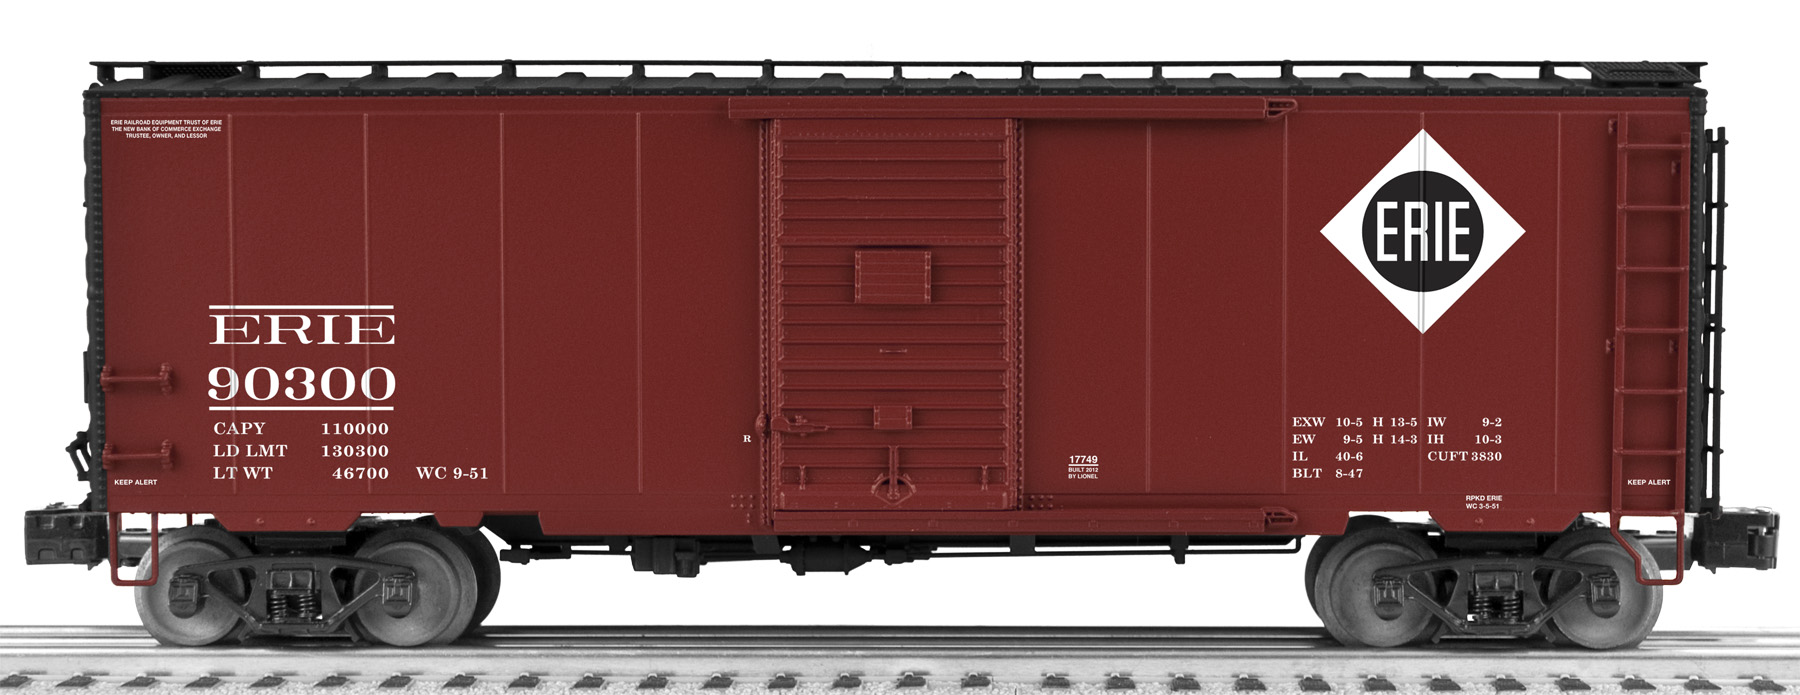 Freight Car Friday Erie Cars Lionel Trains